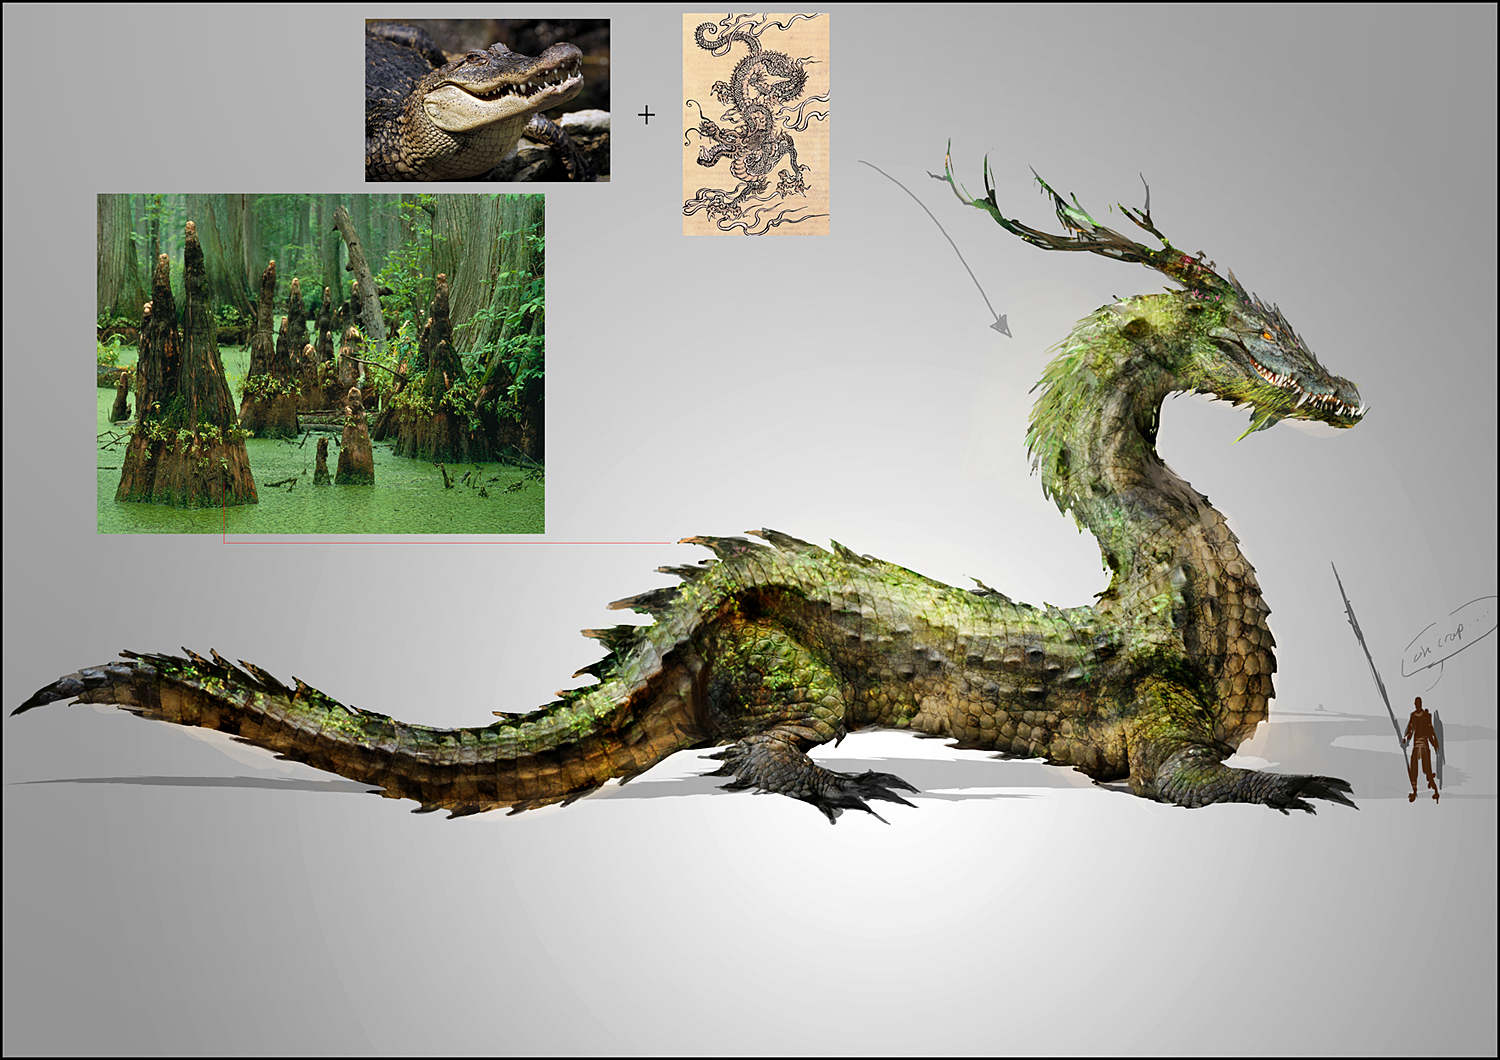 The Swamp Dragon compile 20120706 by cyl1981